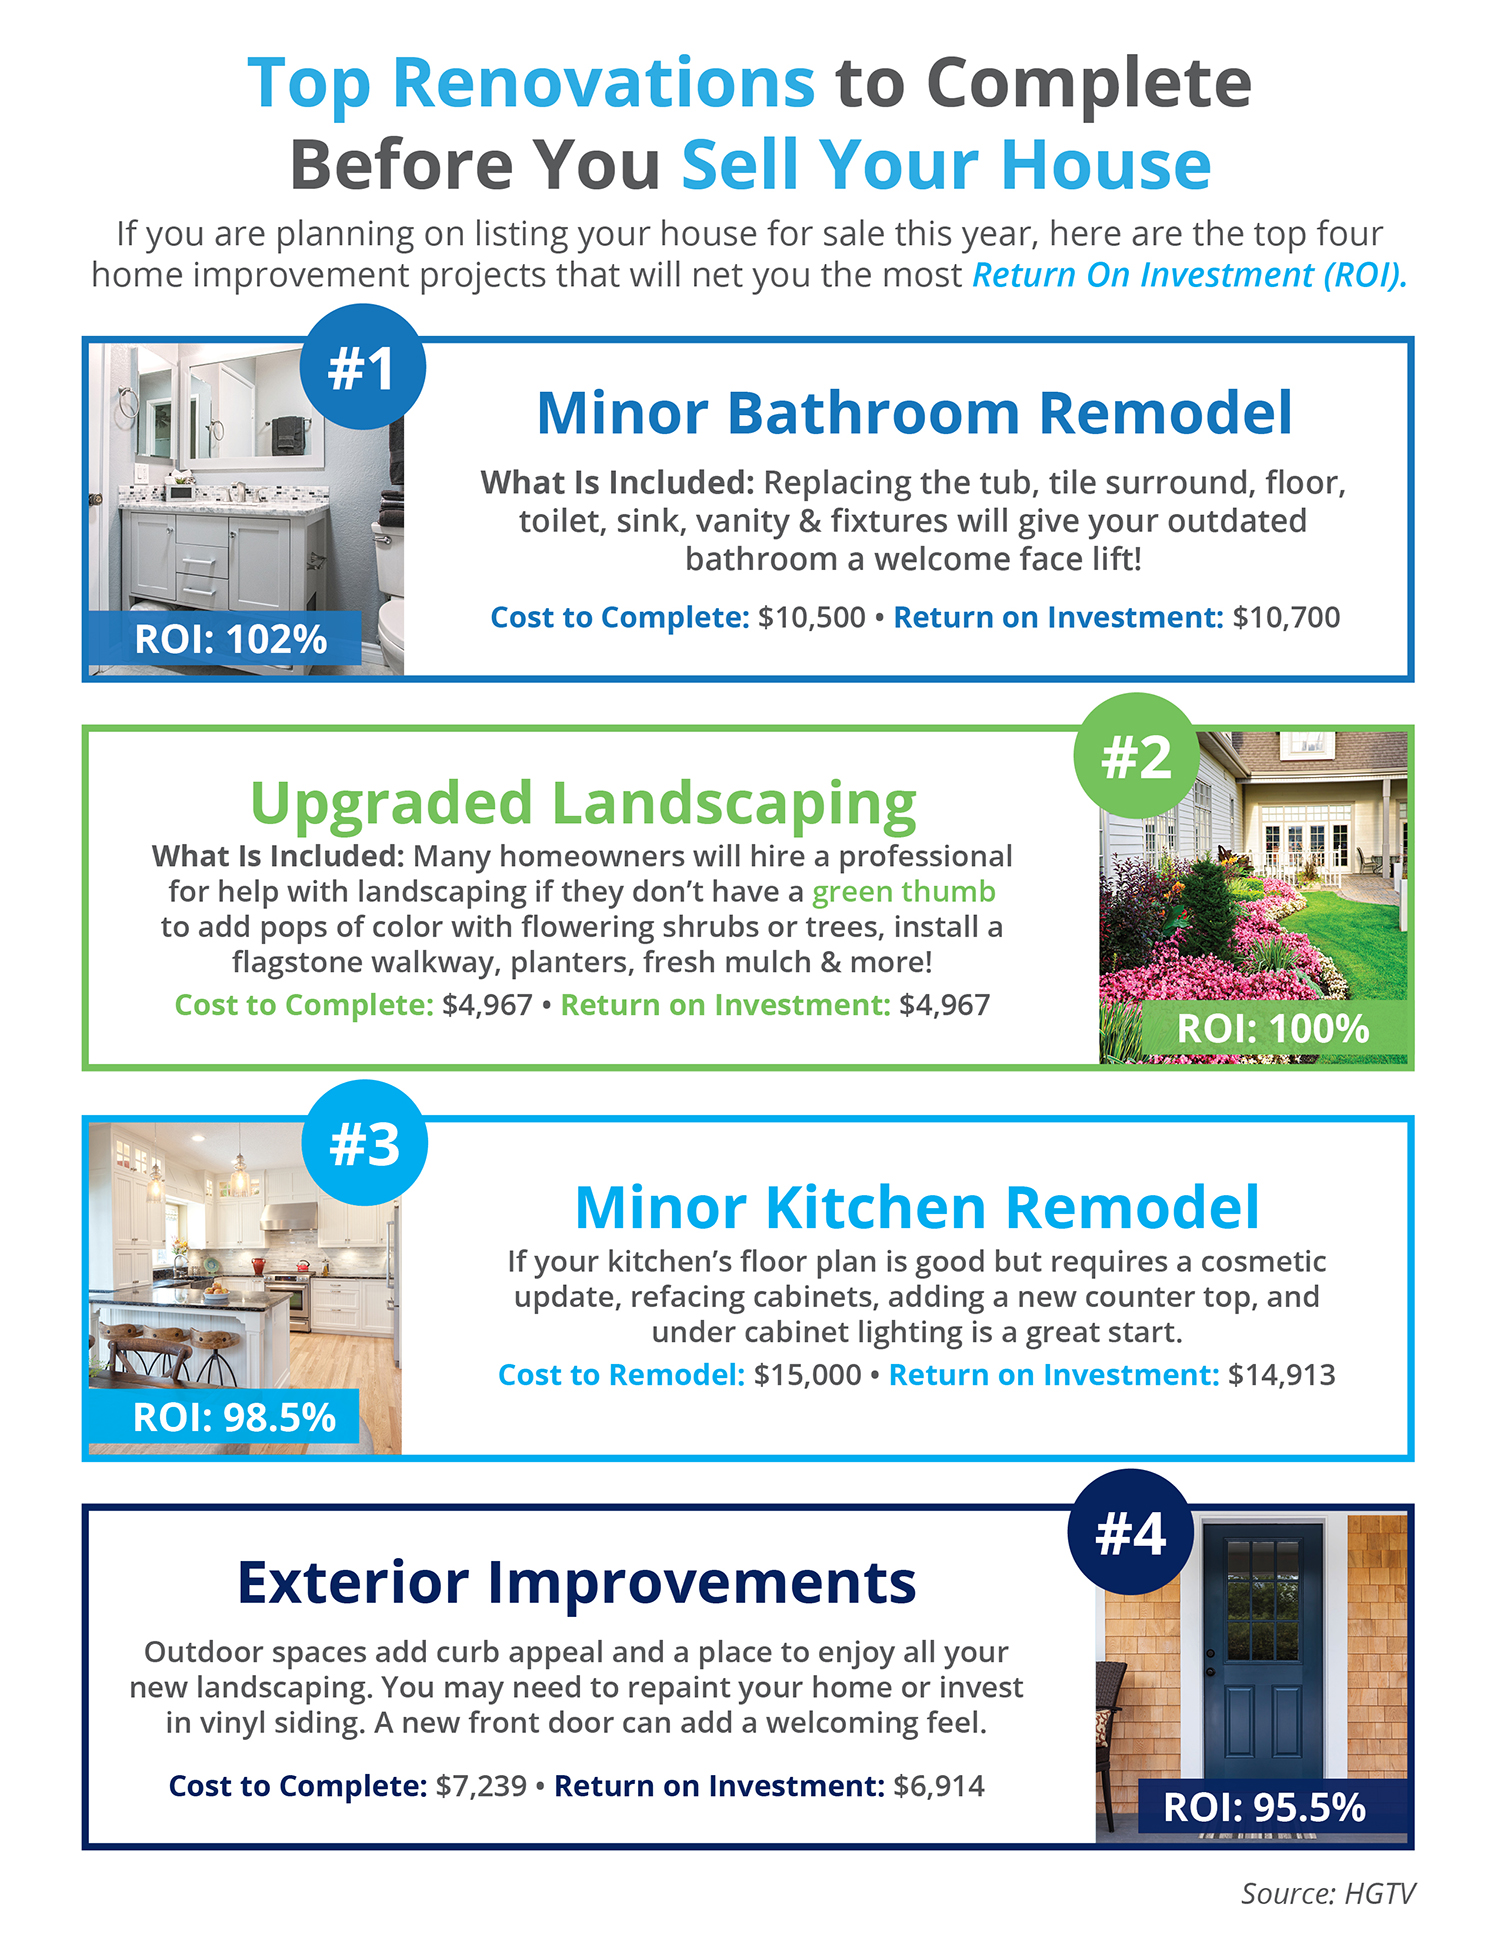 Top Renovations to Complete Before You Sell Your House [INFOGRAPHIC]   Simplifying The Market